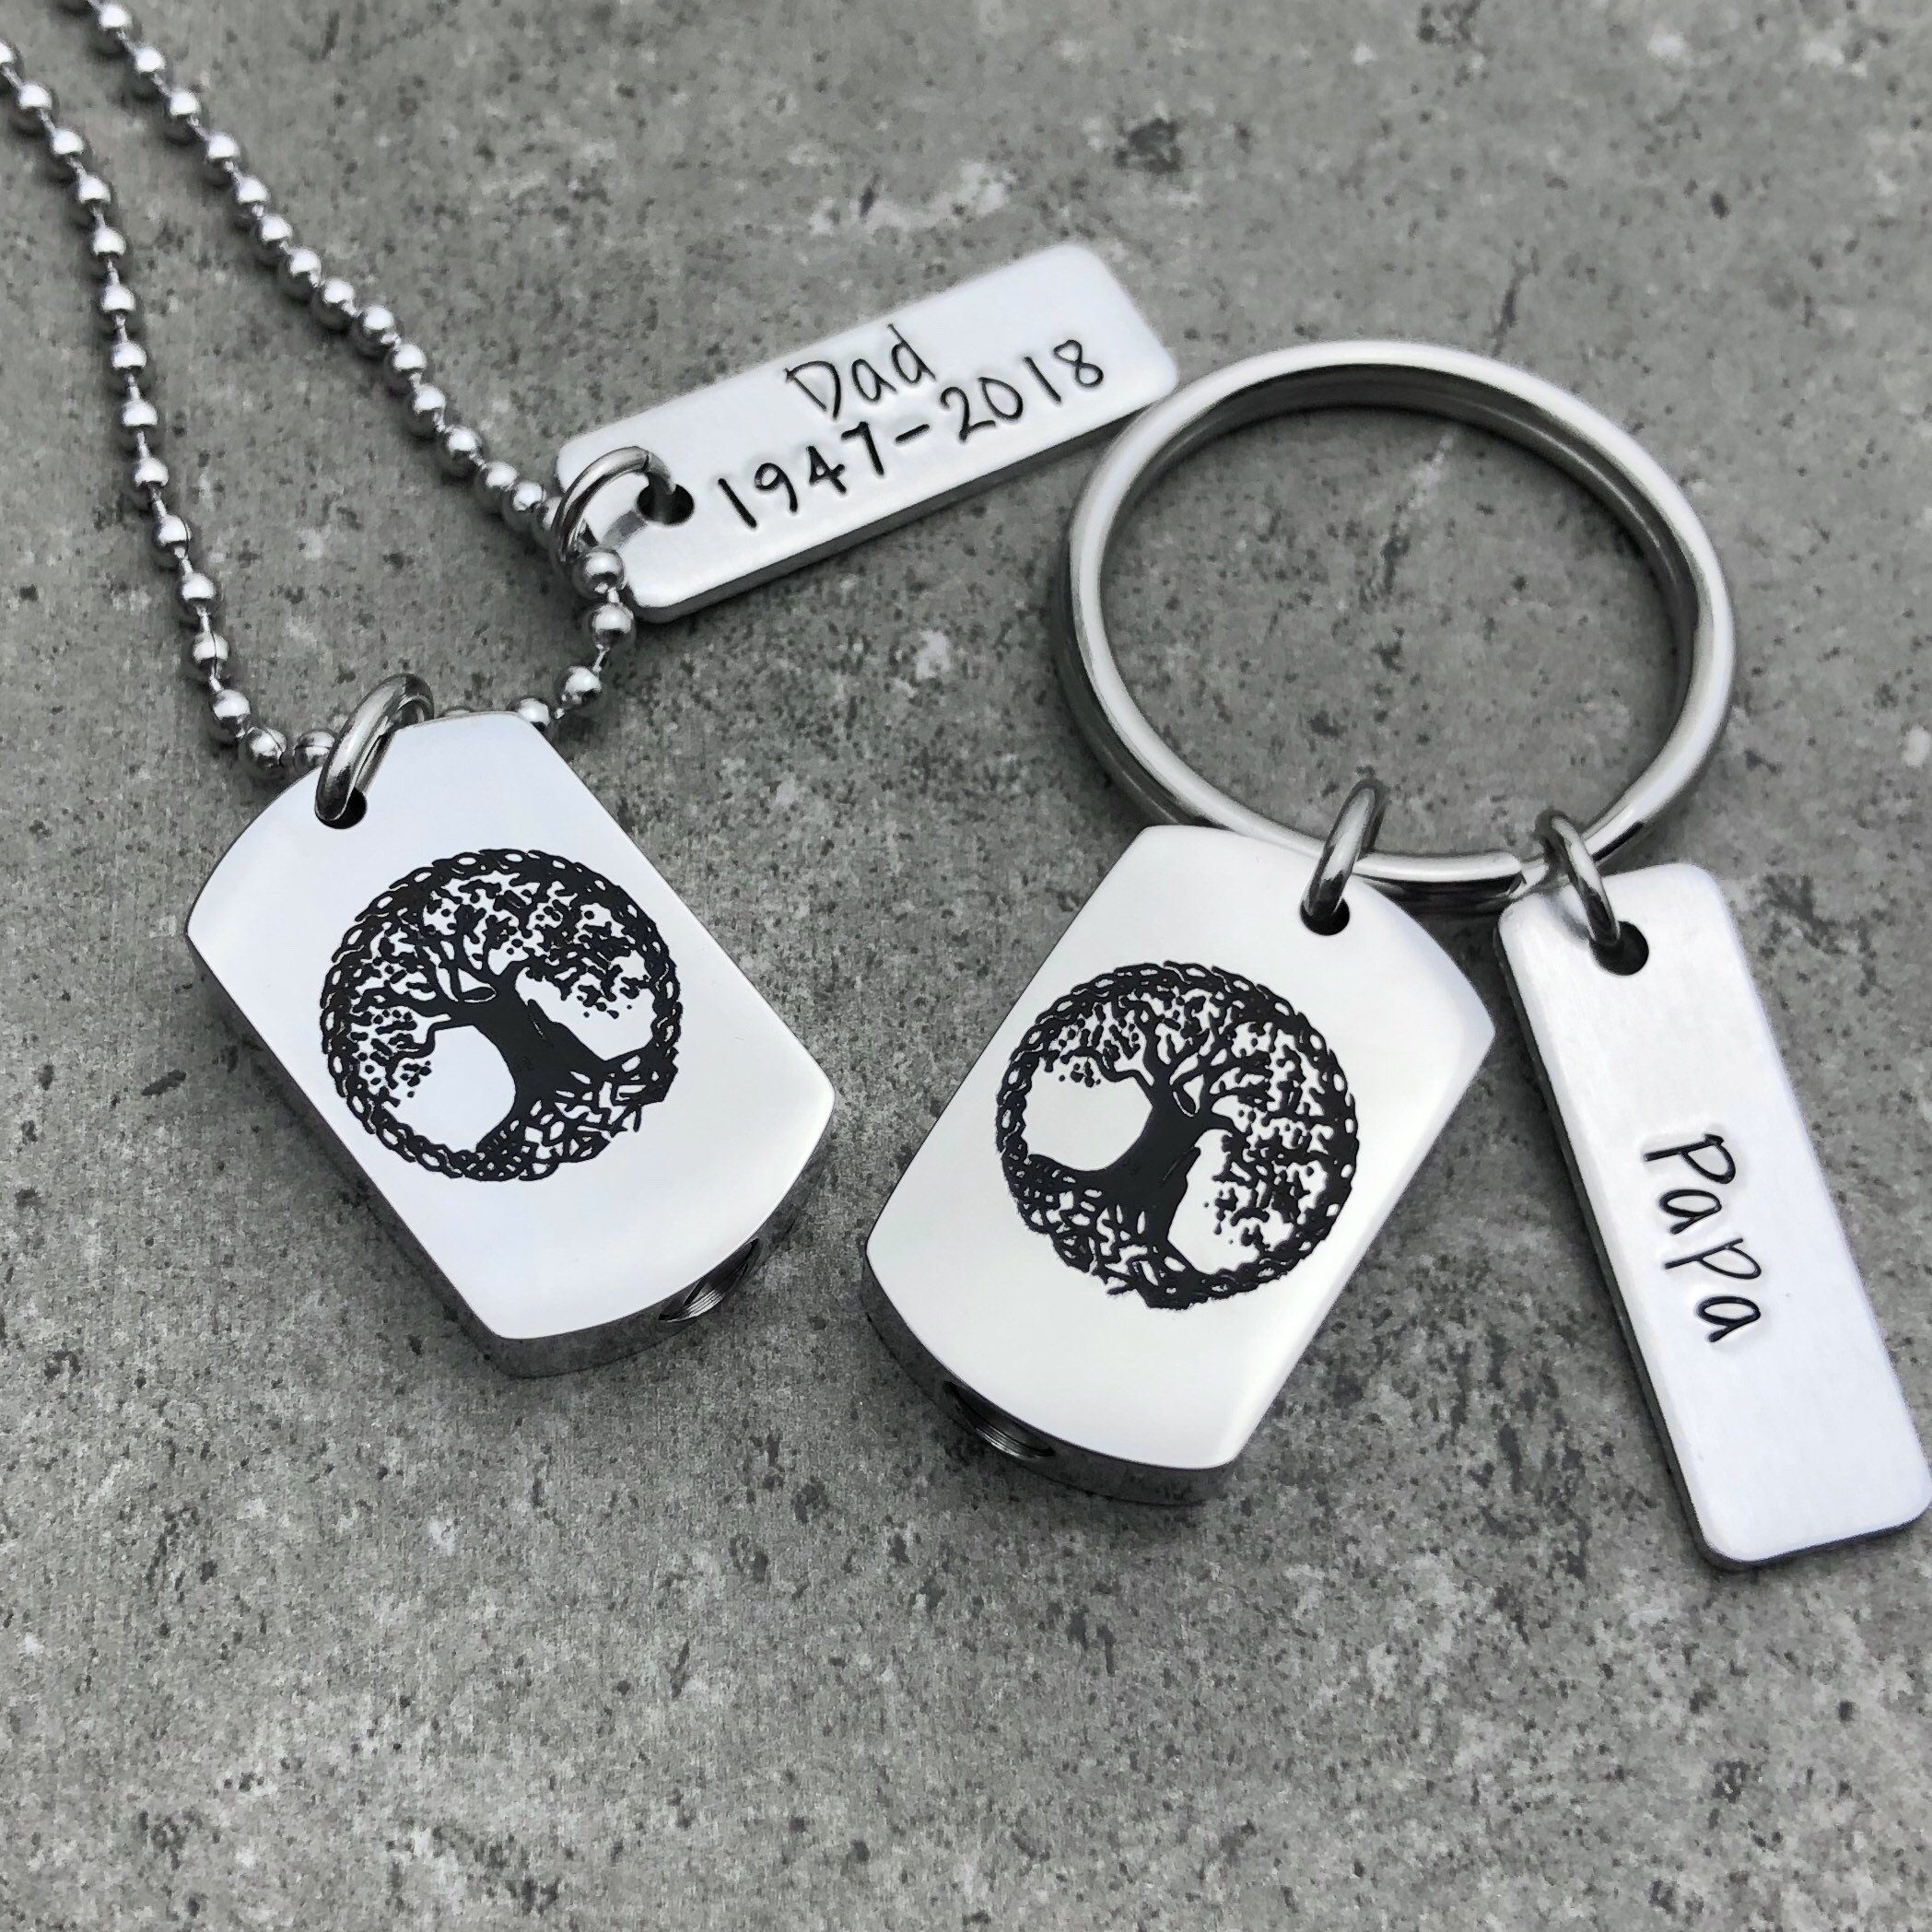 30+ Photo dog tag cremation jewelry ideas in 2021